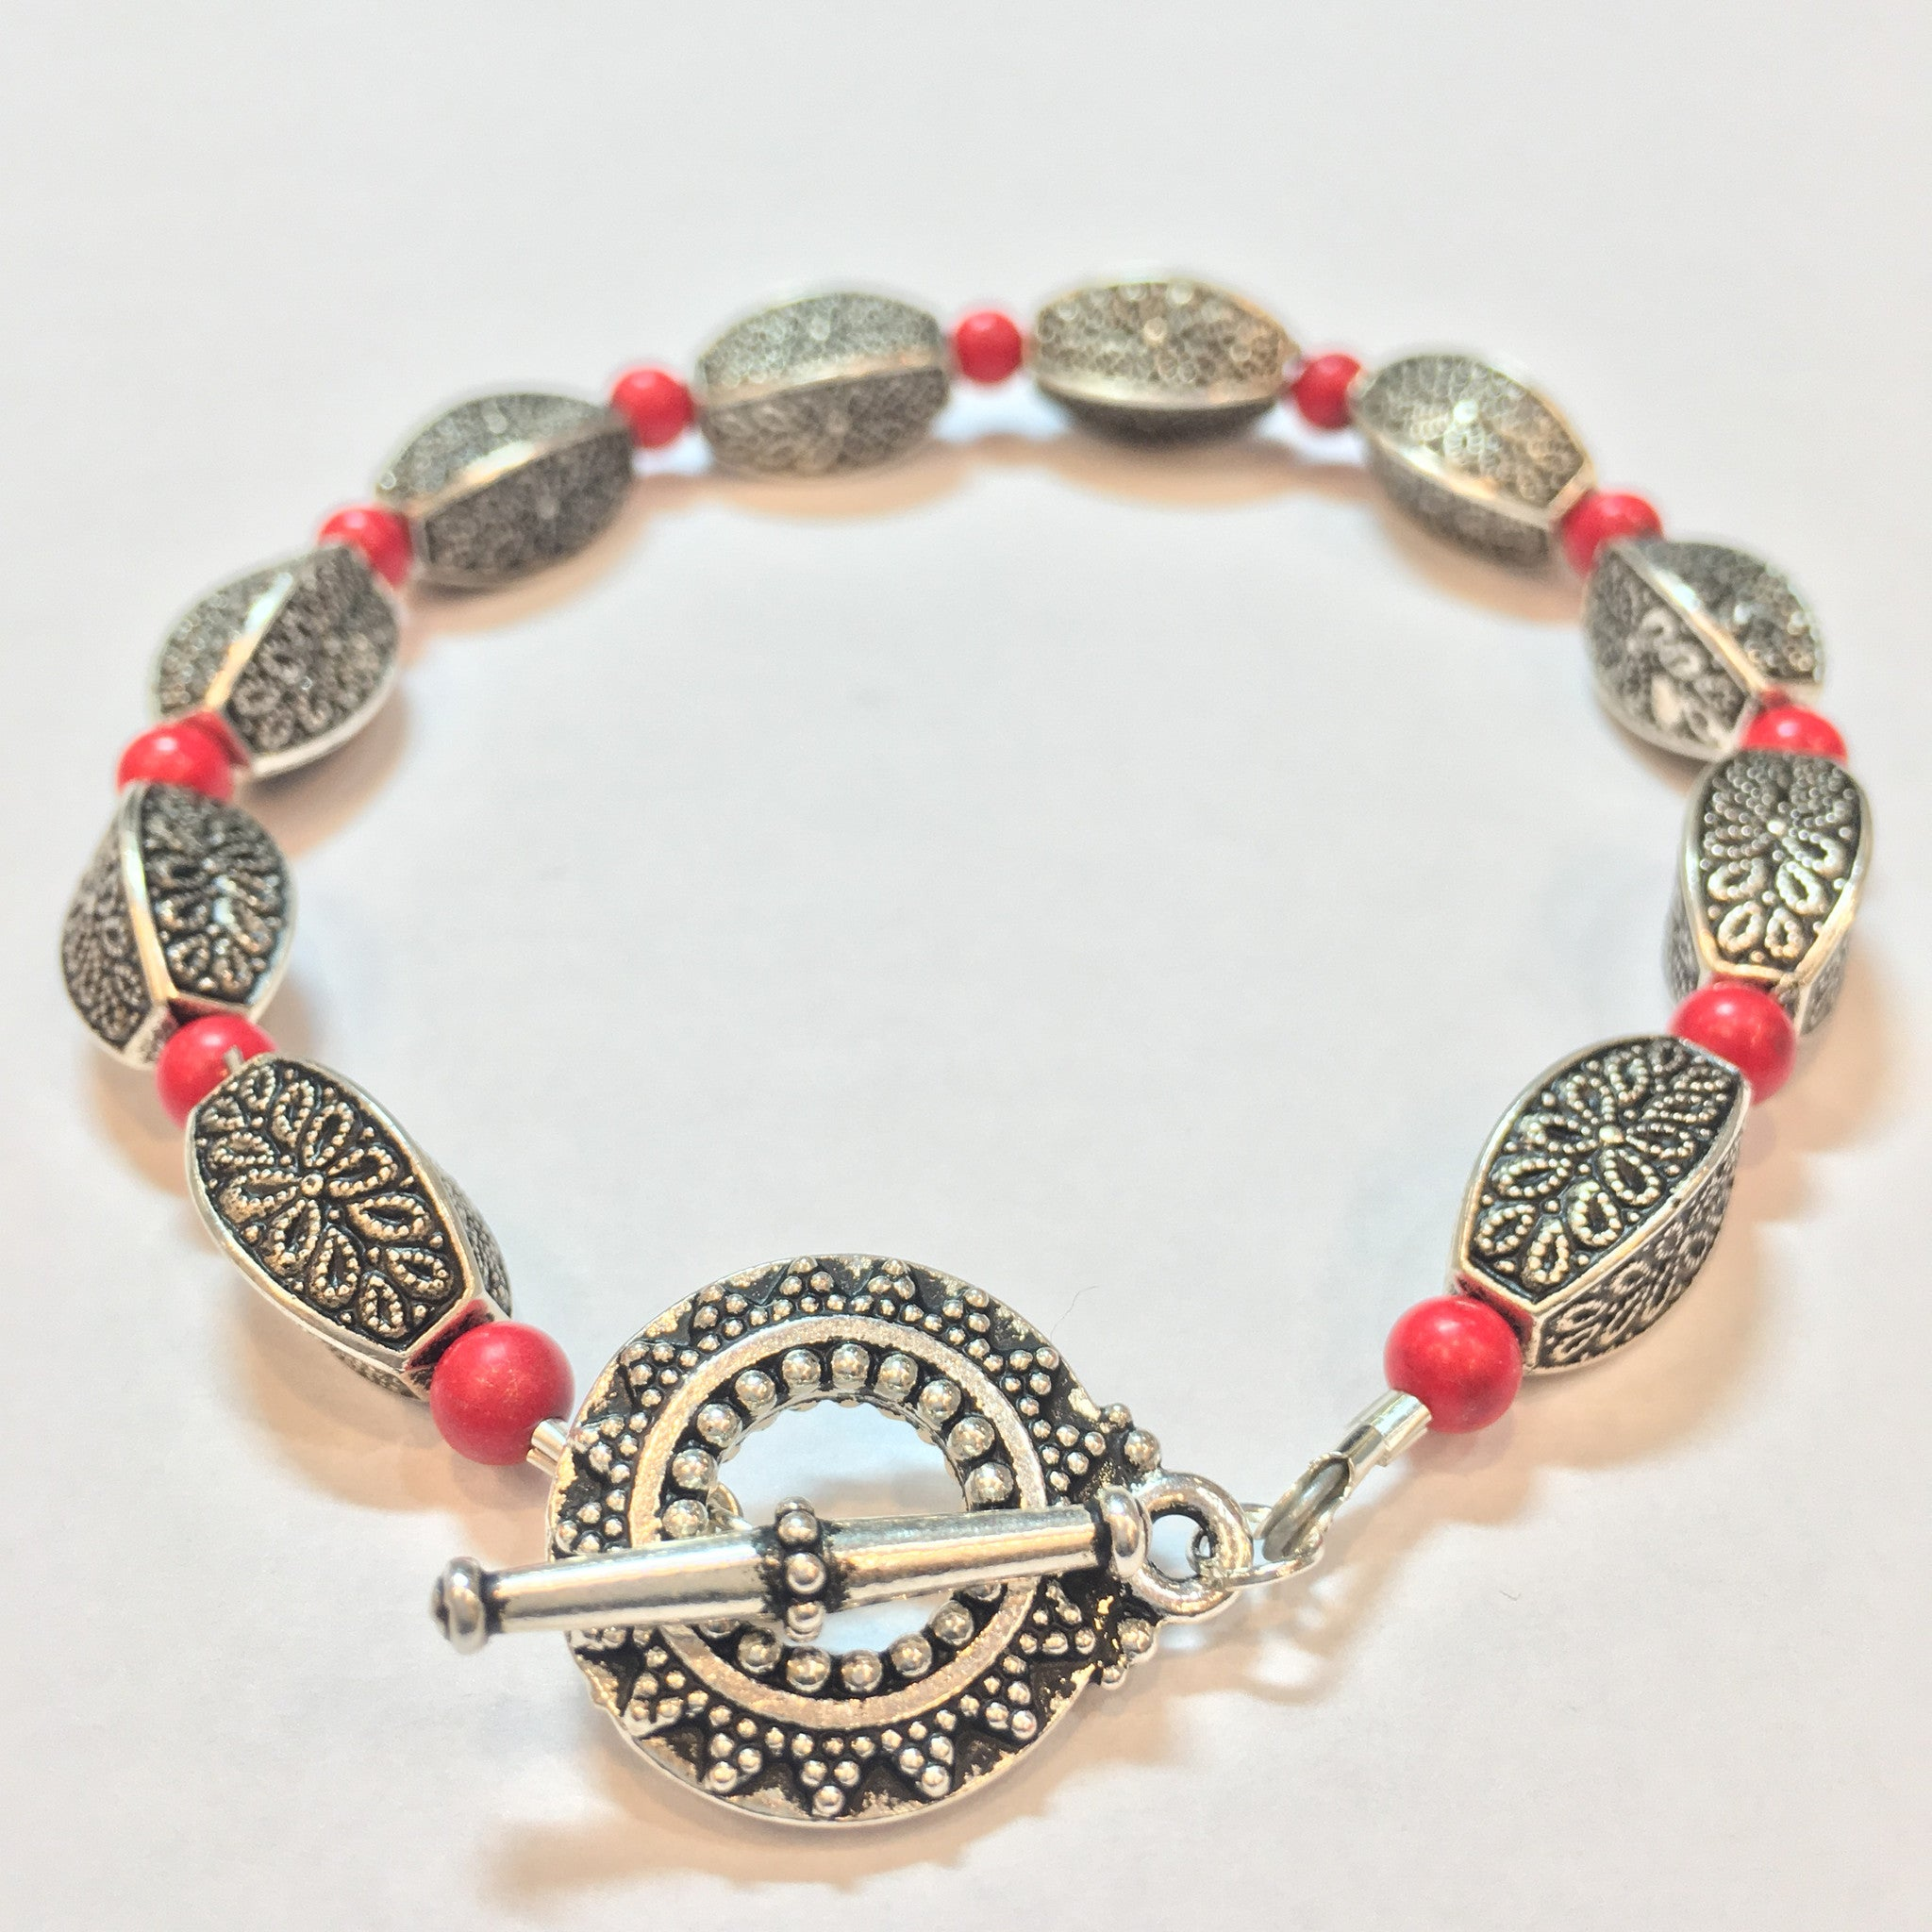 Coral and Antique Silver Bracelet - Real Chic Boutique  - 2